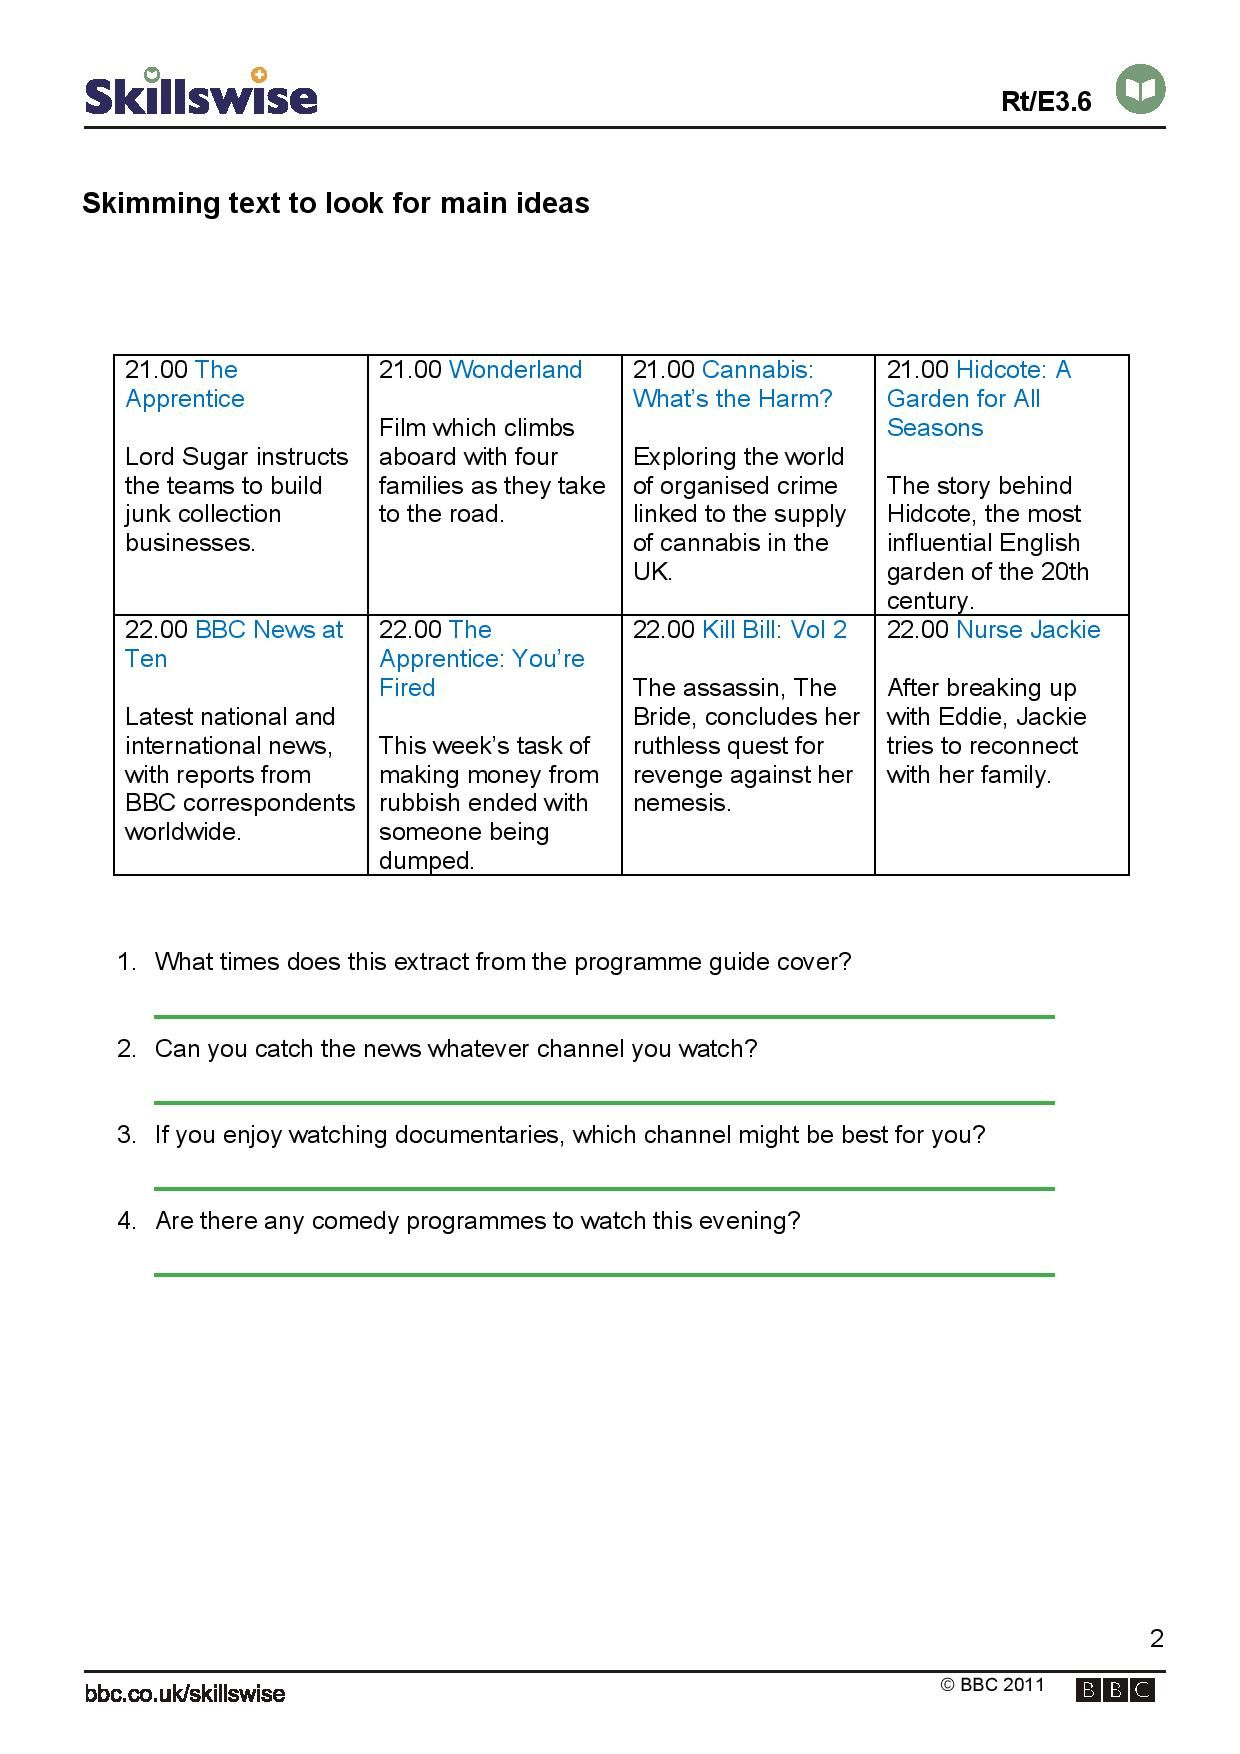 Skimming Text To Look For Main Ideas Exercise In Skimming A Television Guide For The Main In Reading Worksheets Reading Response Worksheets Grammar Worksheets [ 1754 x 1240 Pixel ]